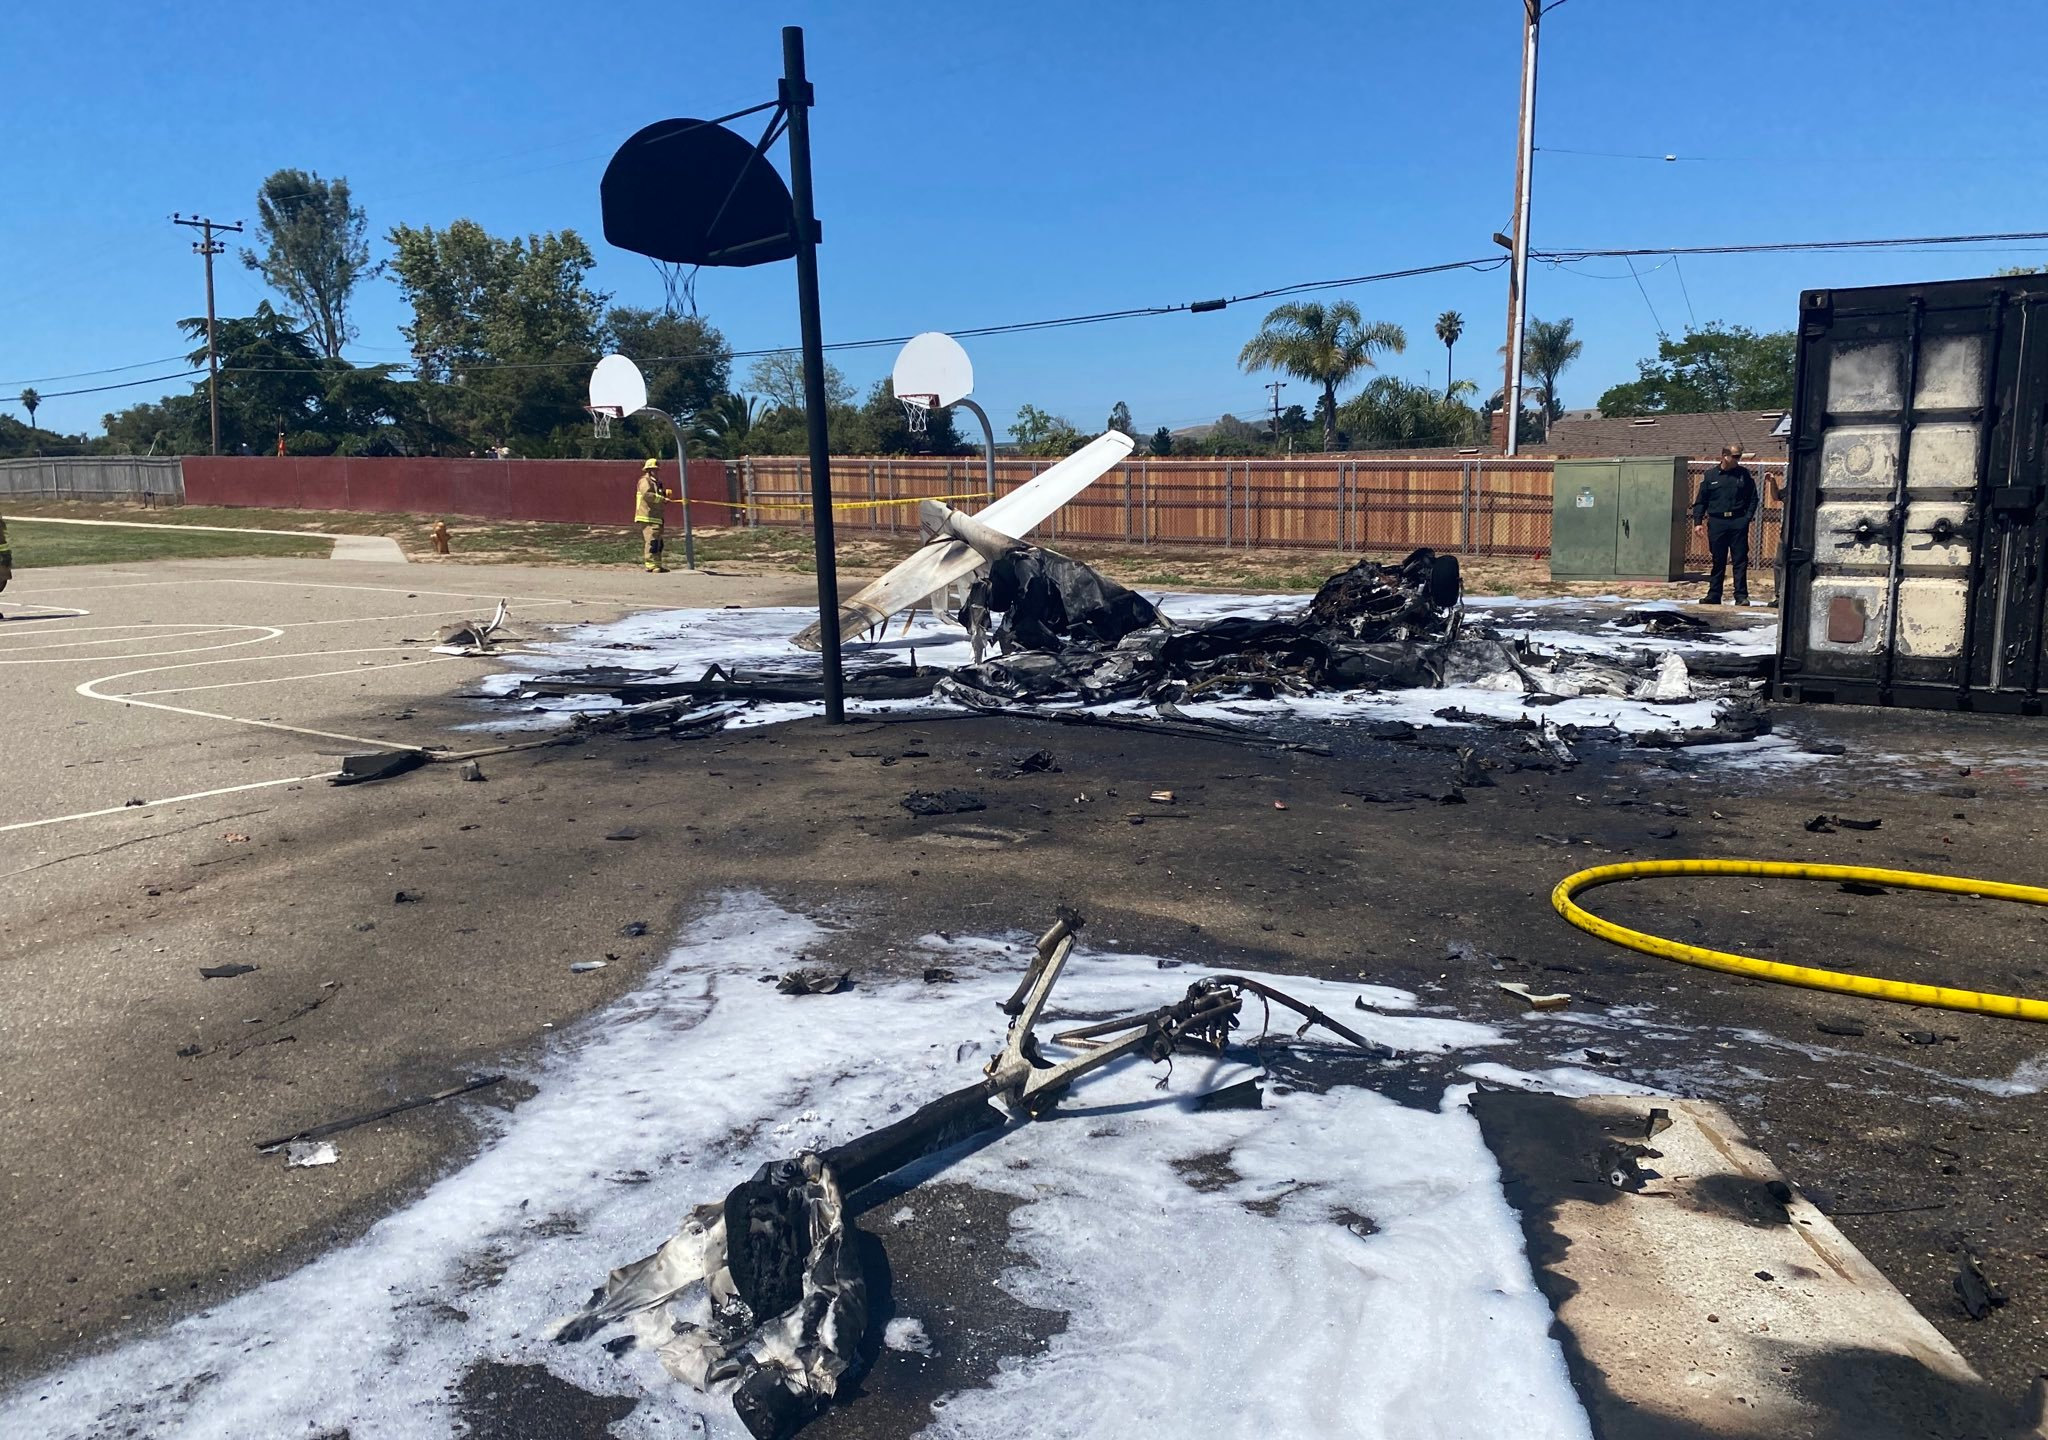 Pilot killed after plane crashes on elementary school playground in Santa Maria (image courtesy of Santa Maria Fire Department)